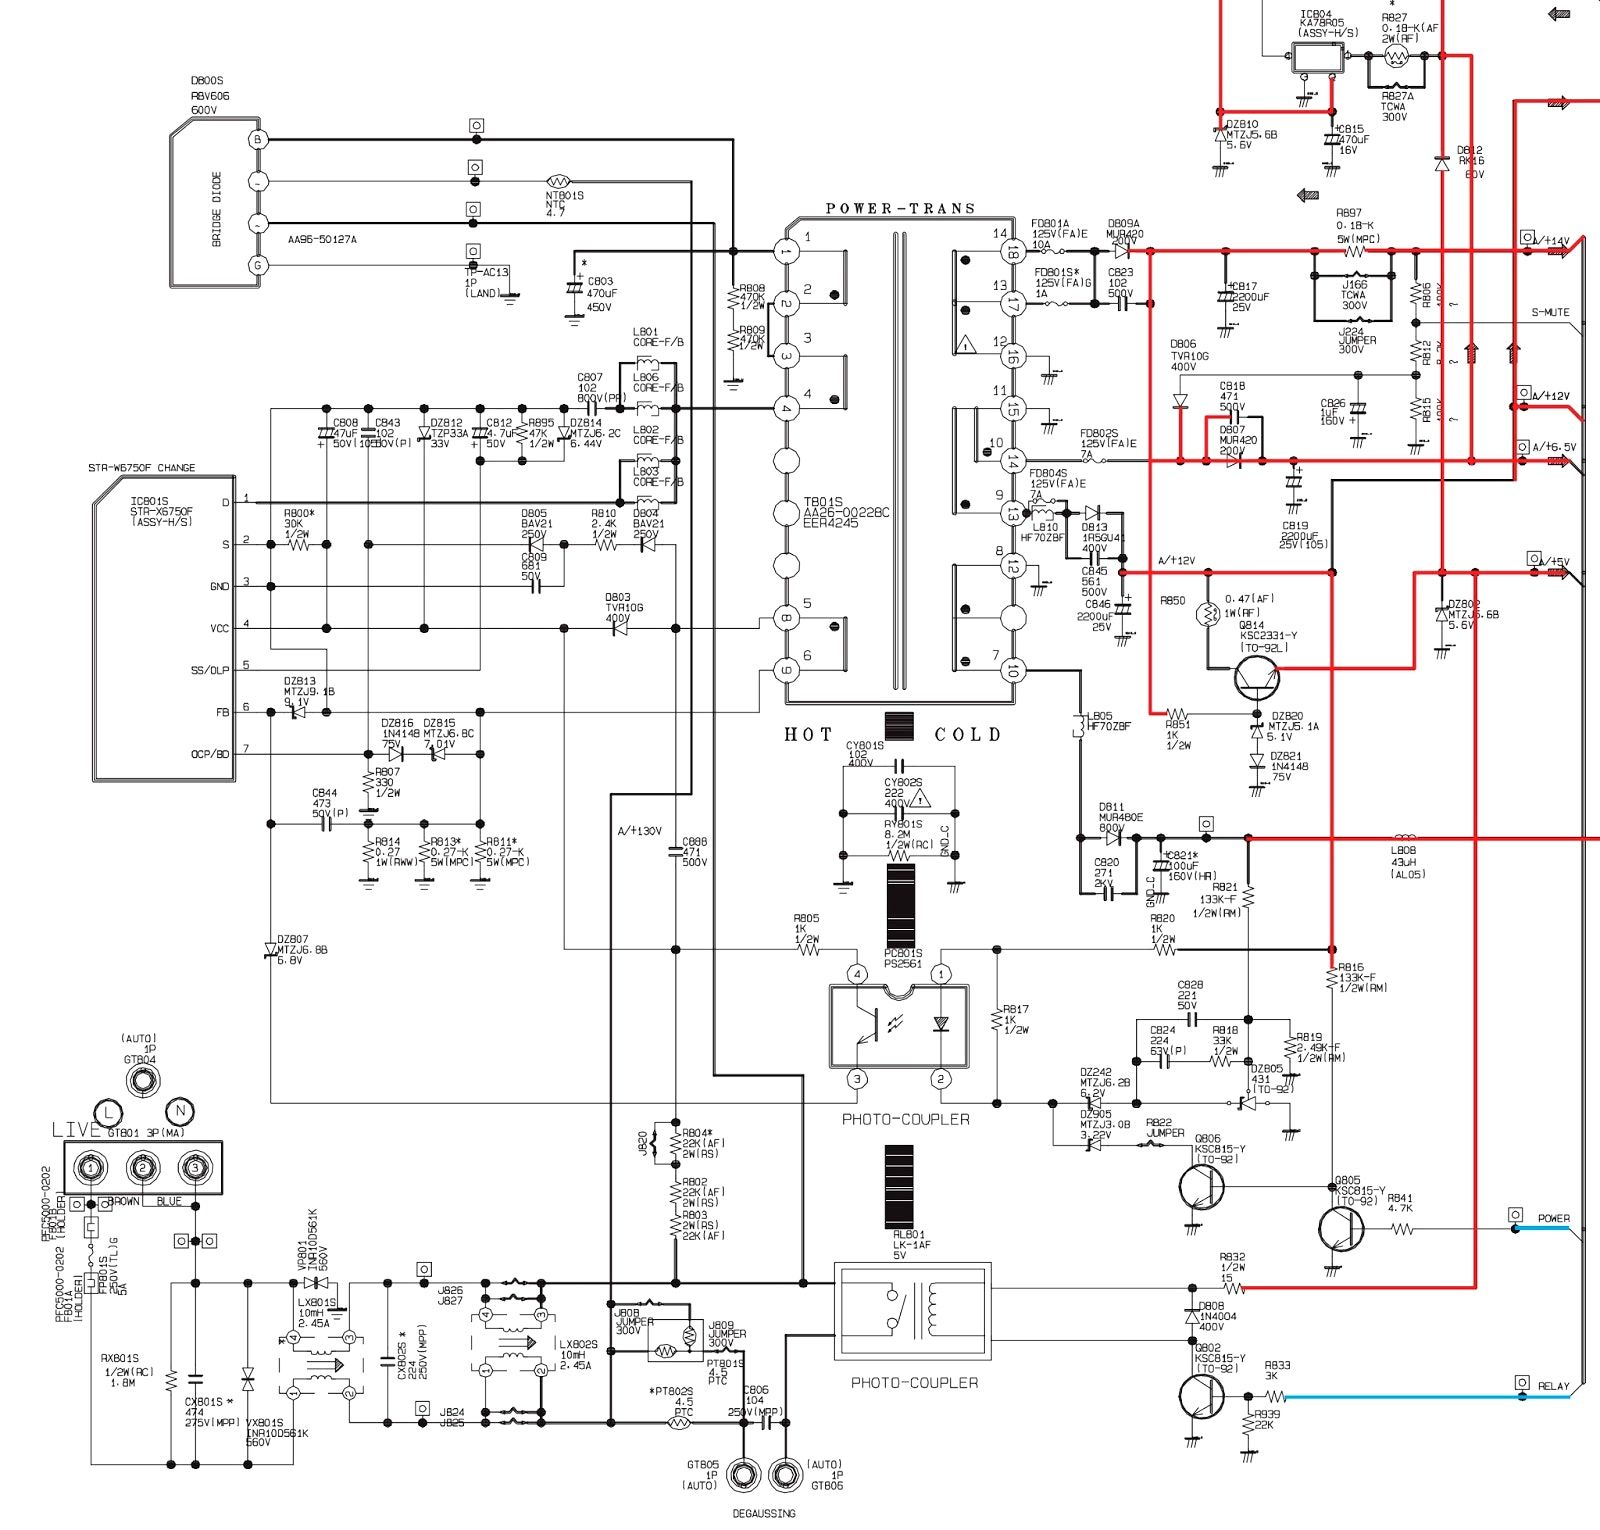 12v Power Schematic Wiring Library 5000w Sg3524 Dc Ac Inverter Circuit Electronics Projects Circuits Symbols Lovely Samsung Supply Diagram Untitled Of A Variable Simple